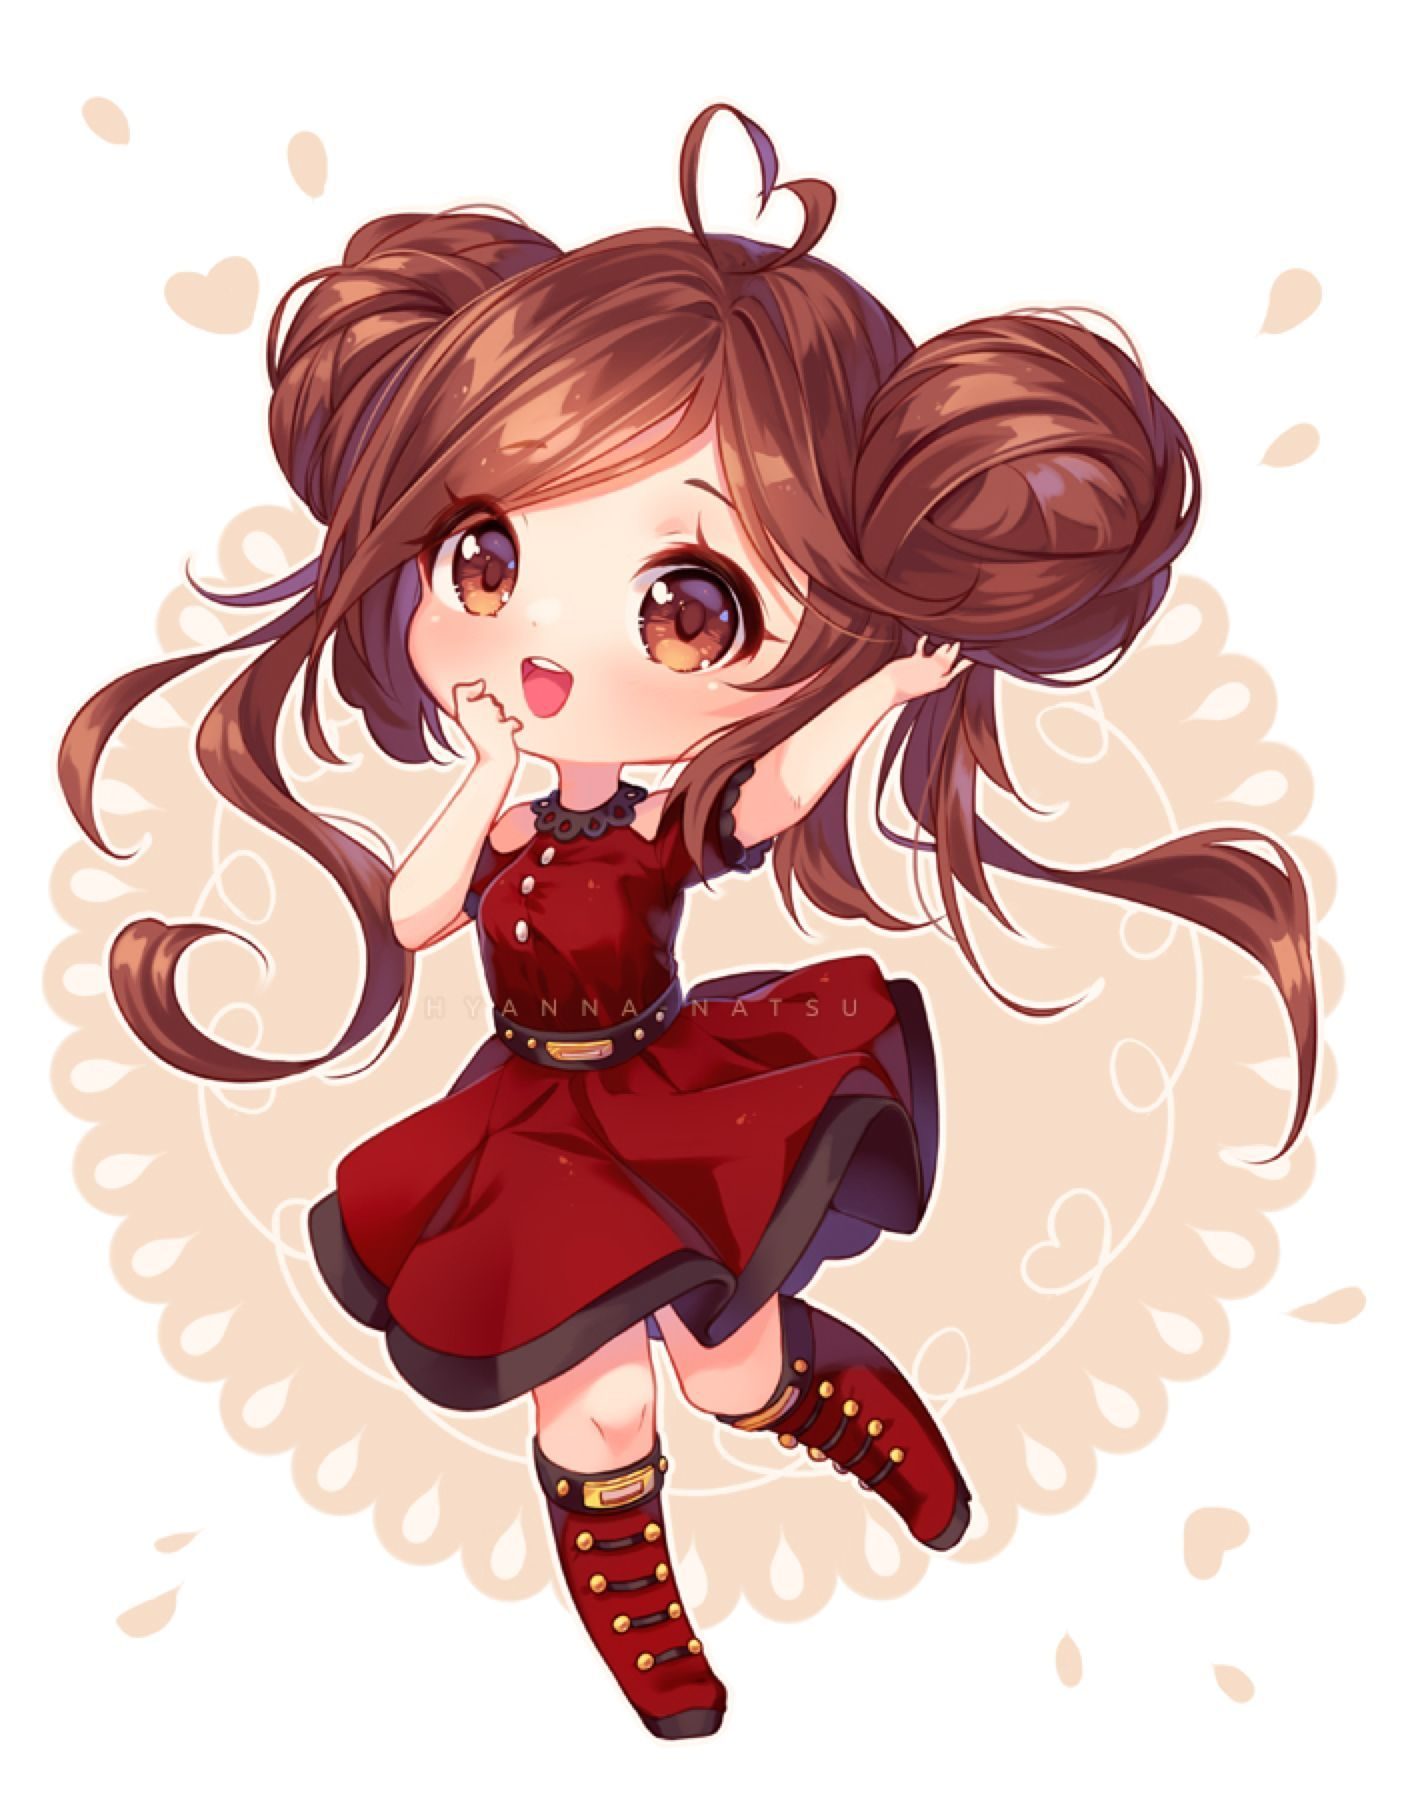 Cute Anime In 2020 Chibi Girl Drawings Chibi Anime Kawaii Cute Anime Chibi